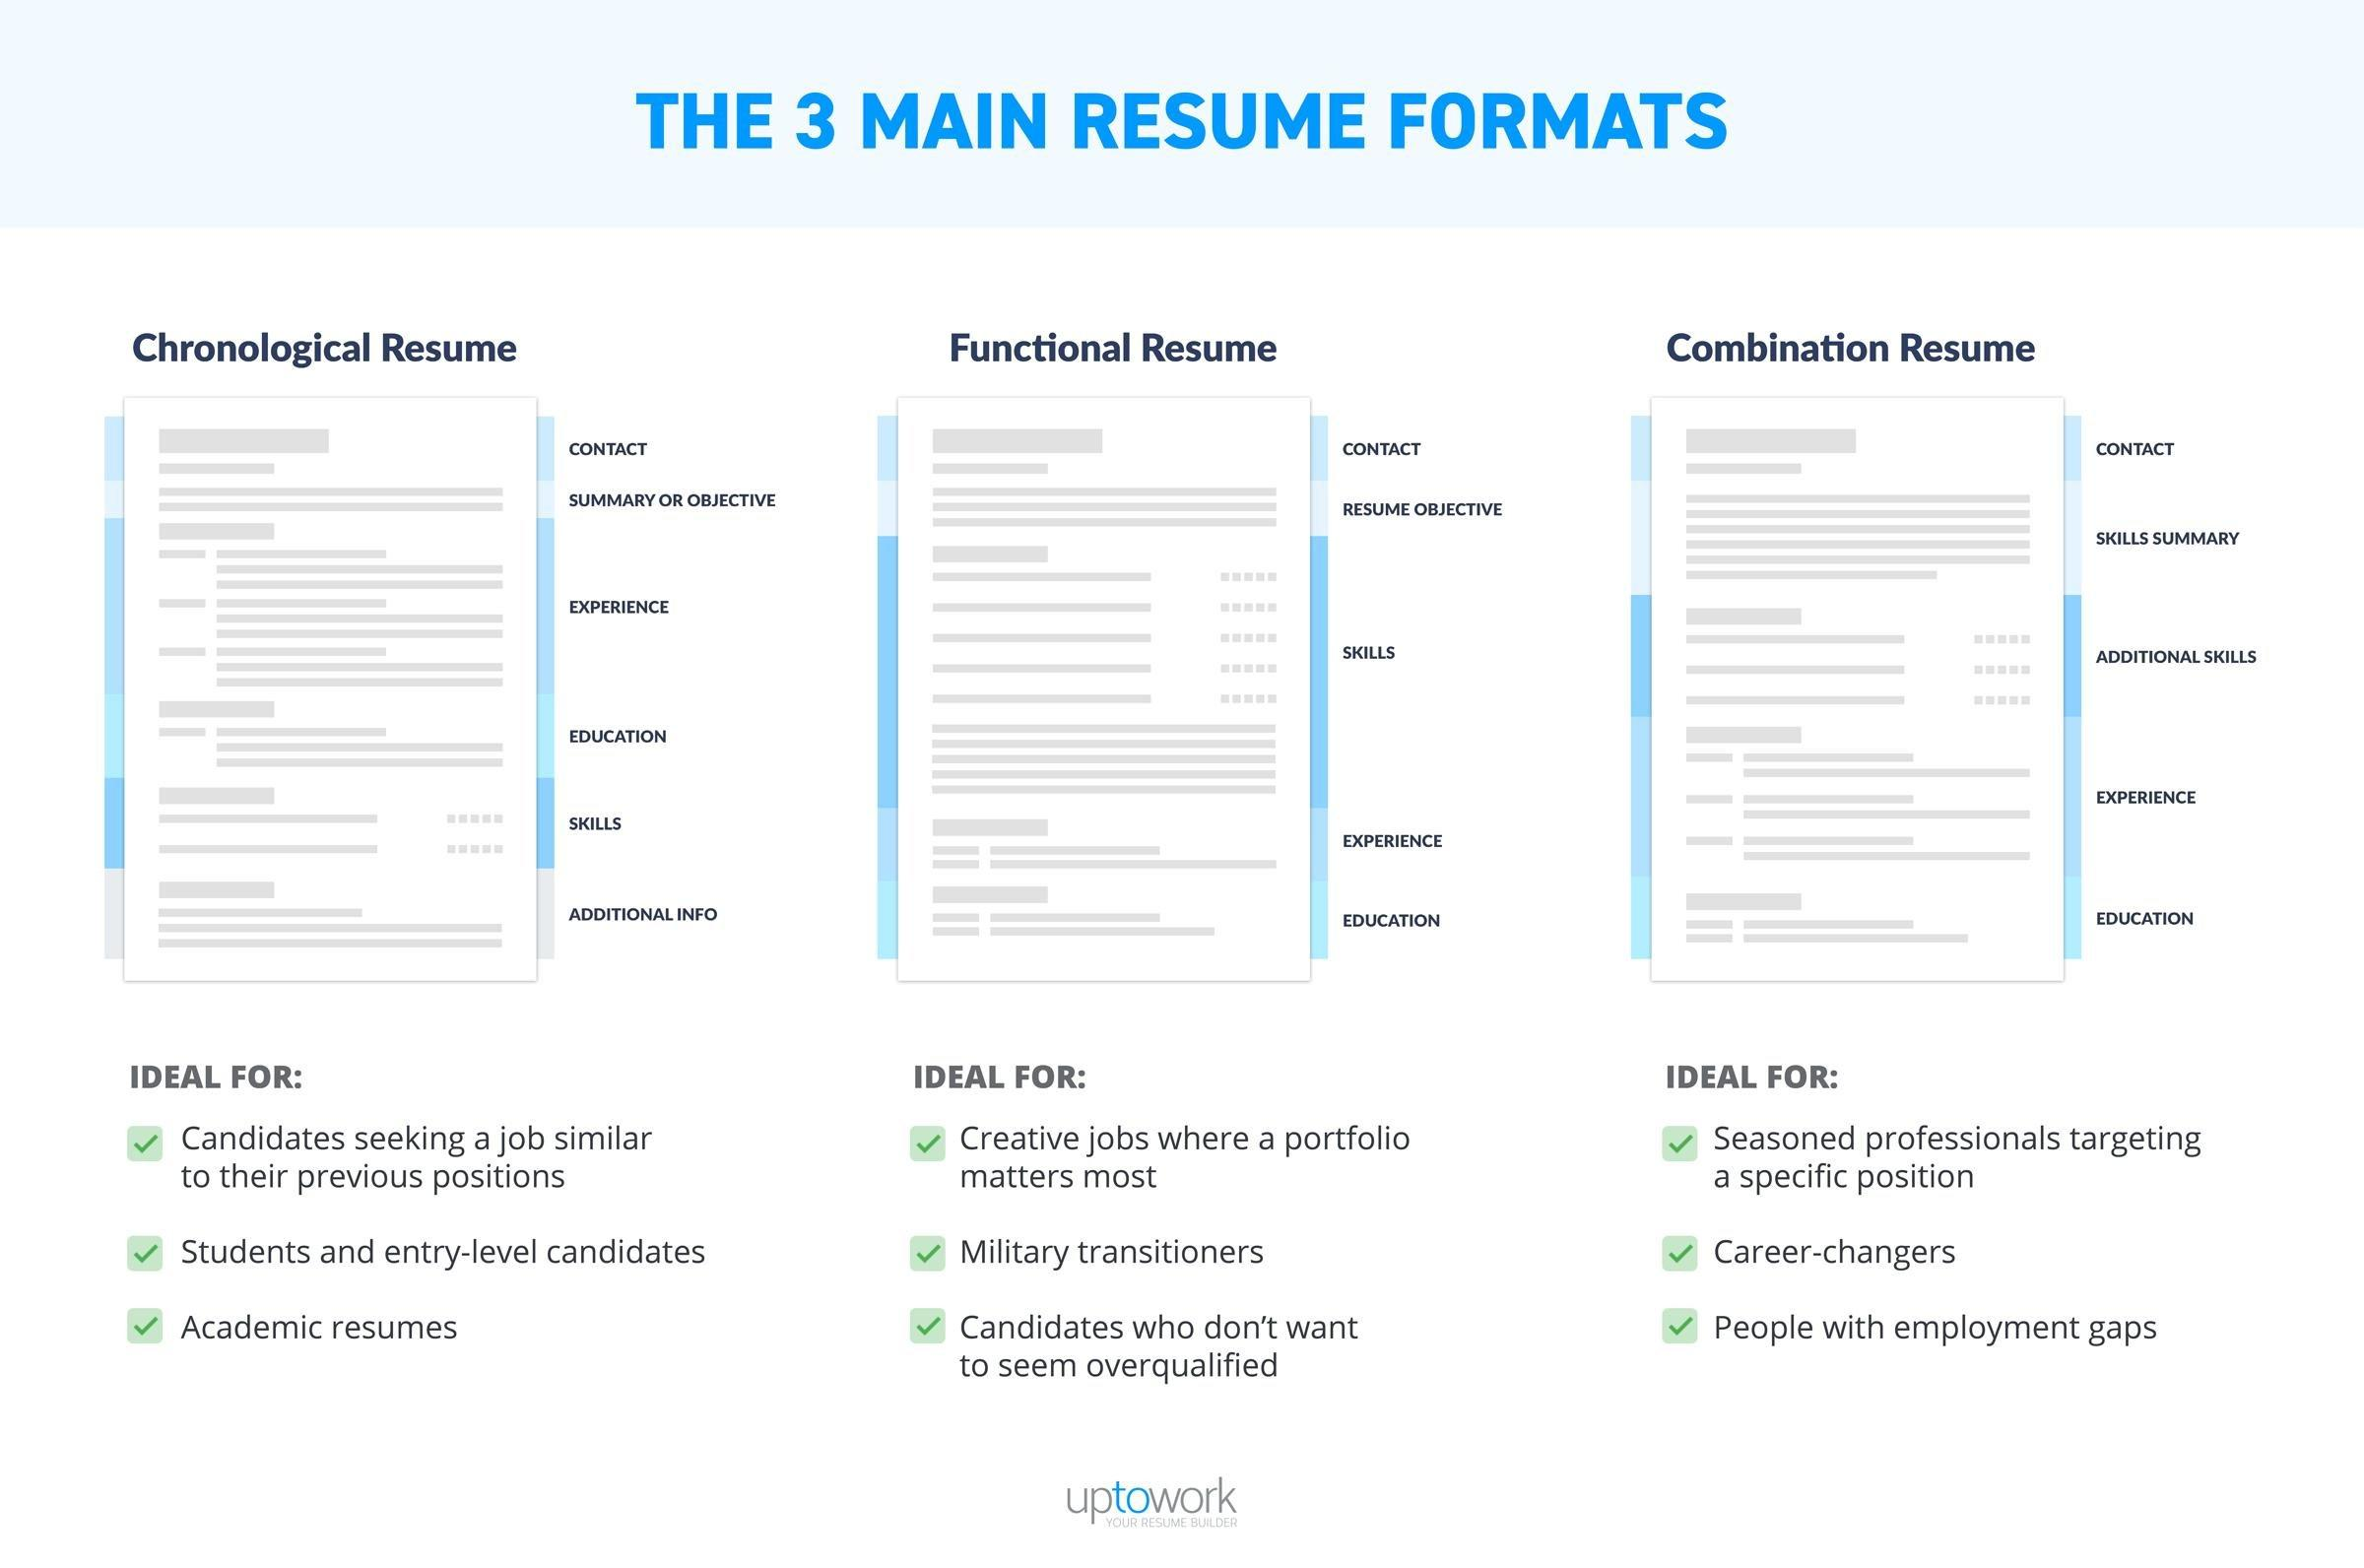 79 Top Different Resume Formats with Pictures